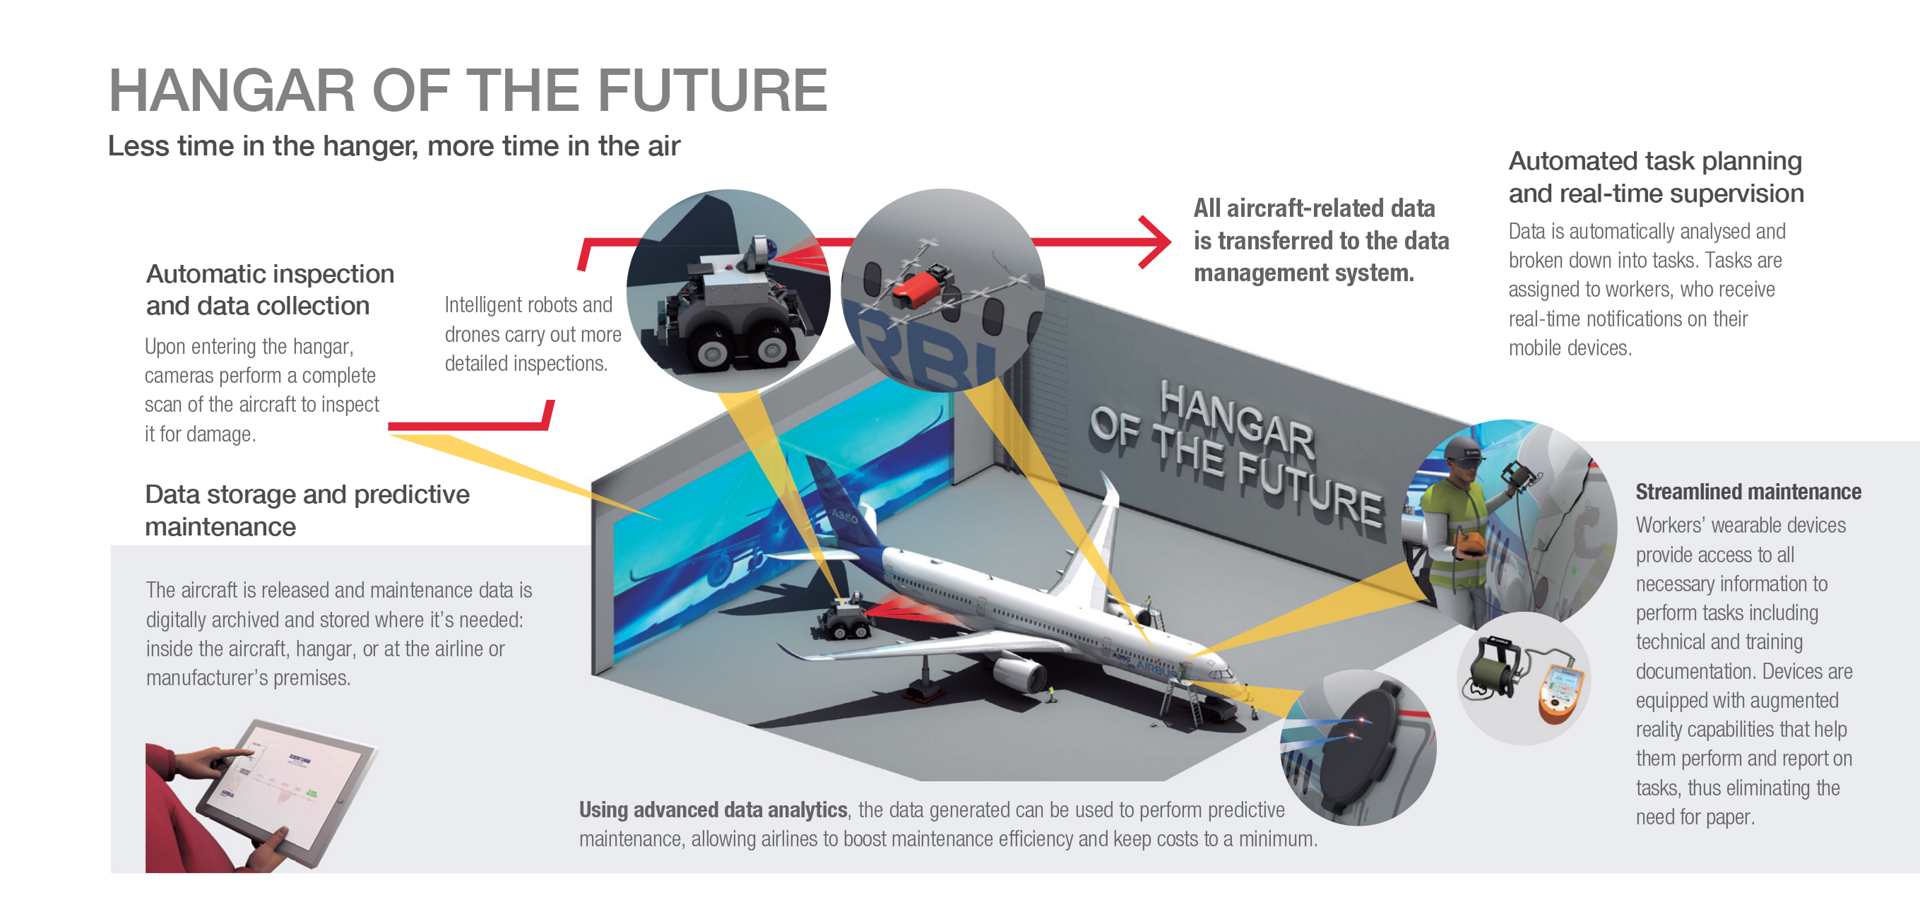 An infographic highlighting key aspects of Airbus' Hangar of the Future concept.